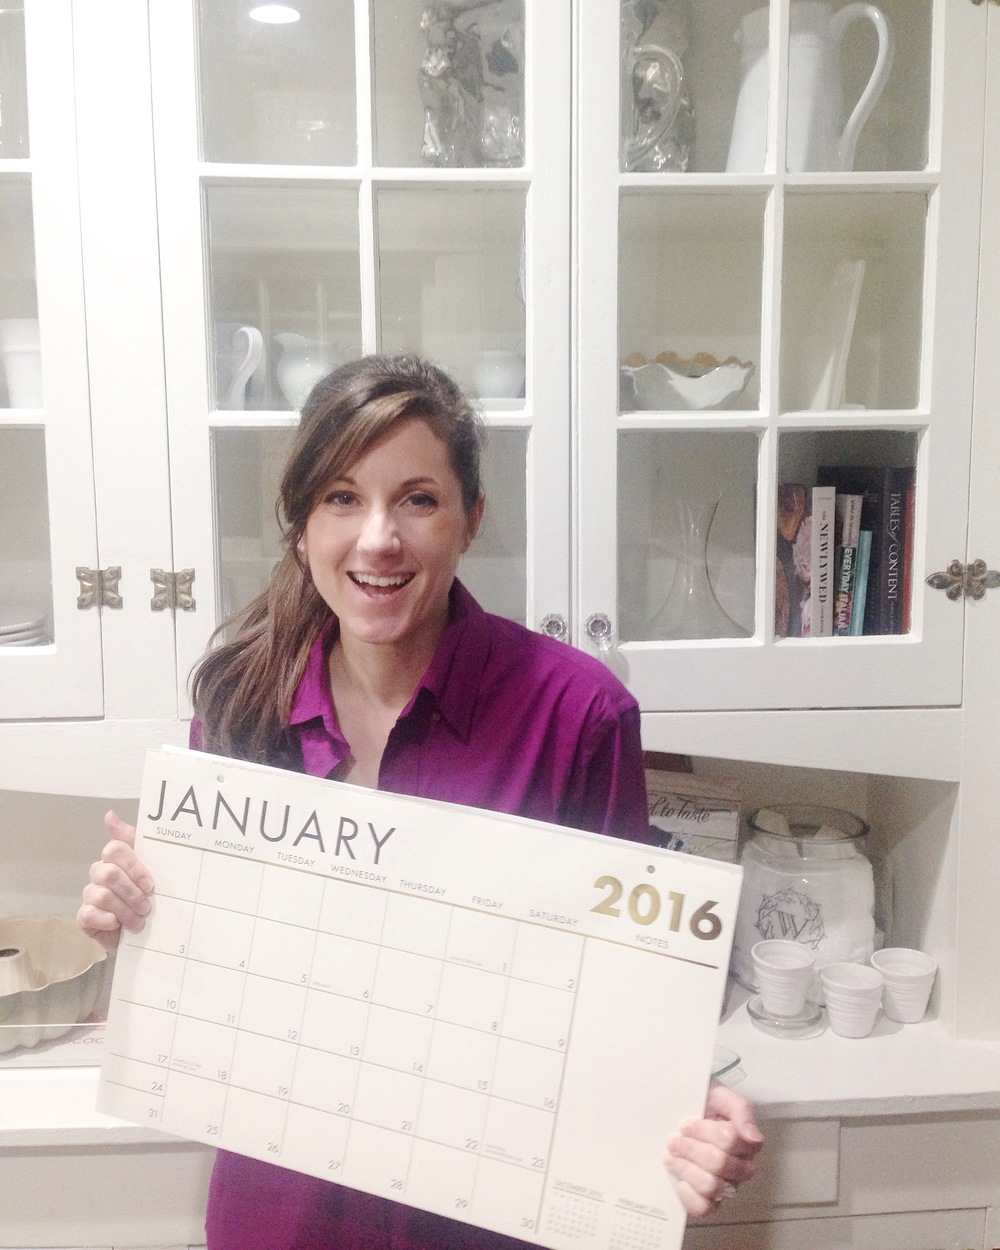 2016 calendar The LovingKind